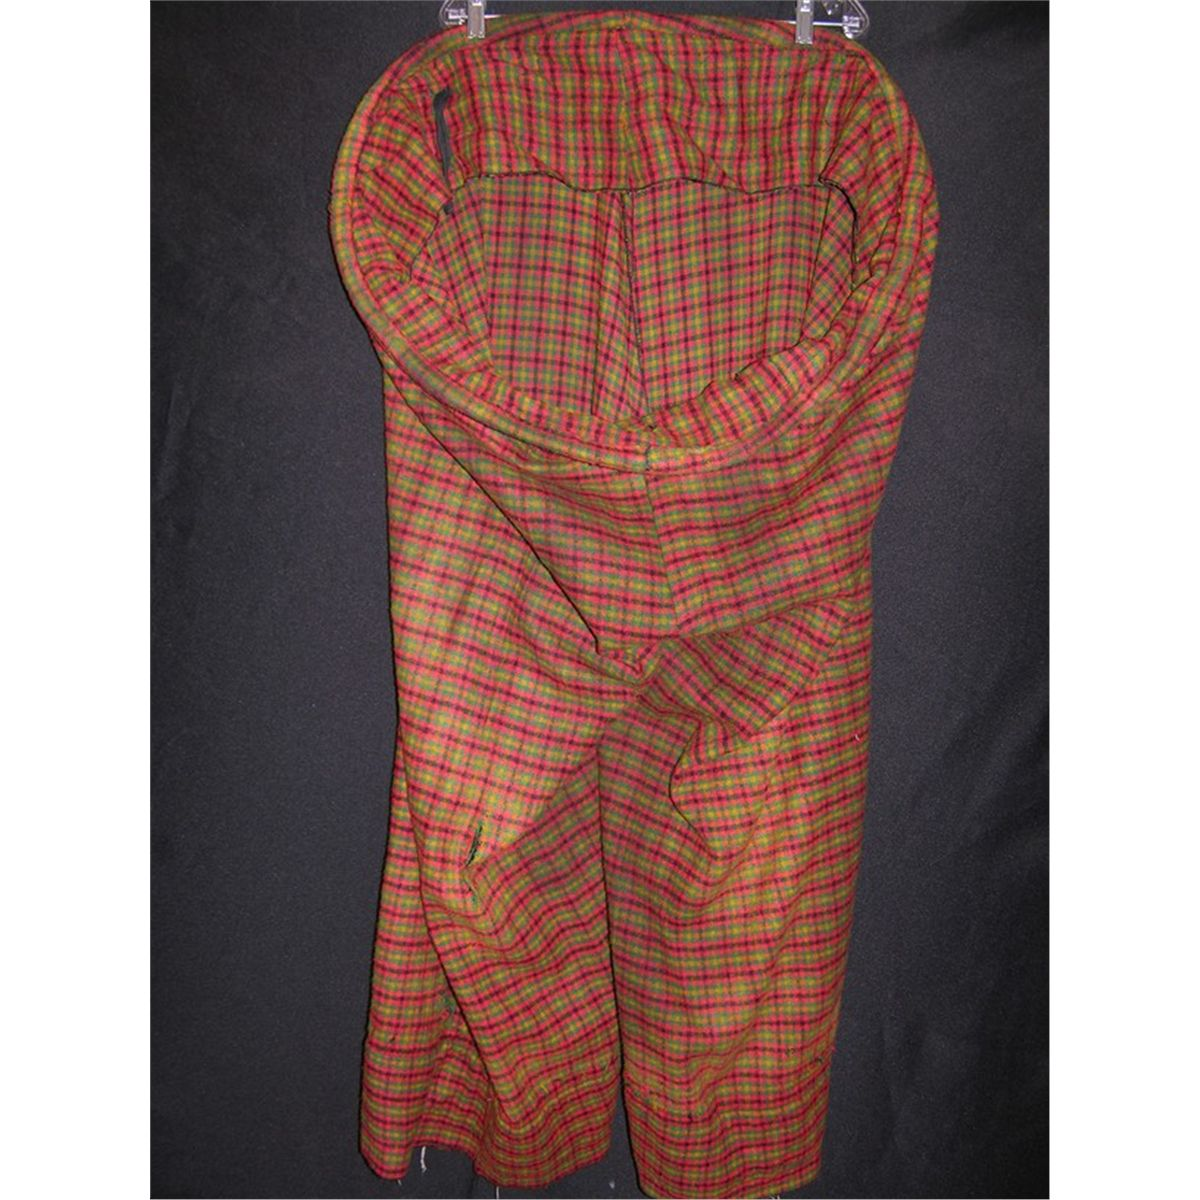 Vintage Hollywood Clown Pants